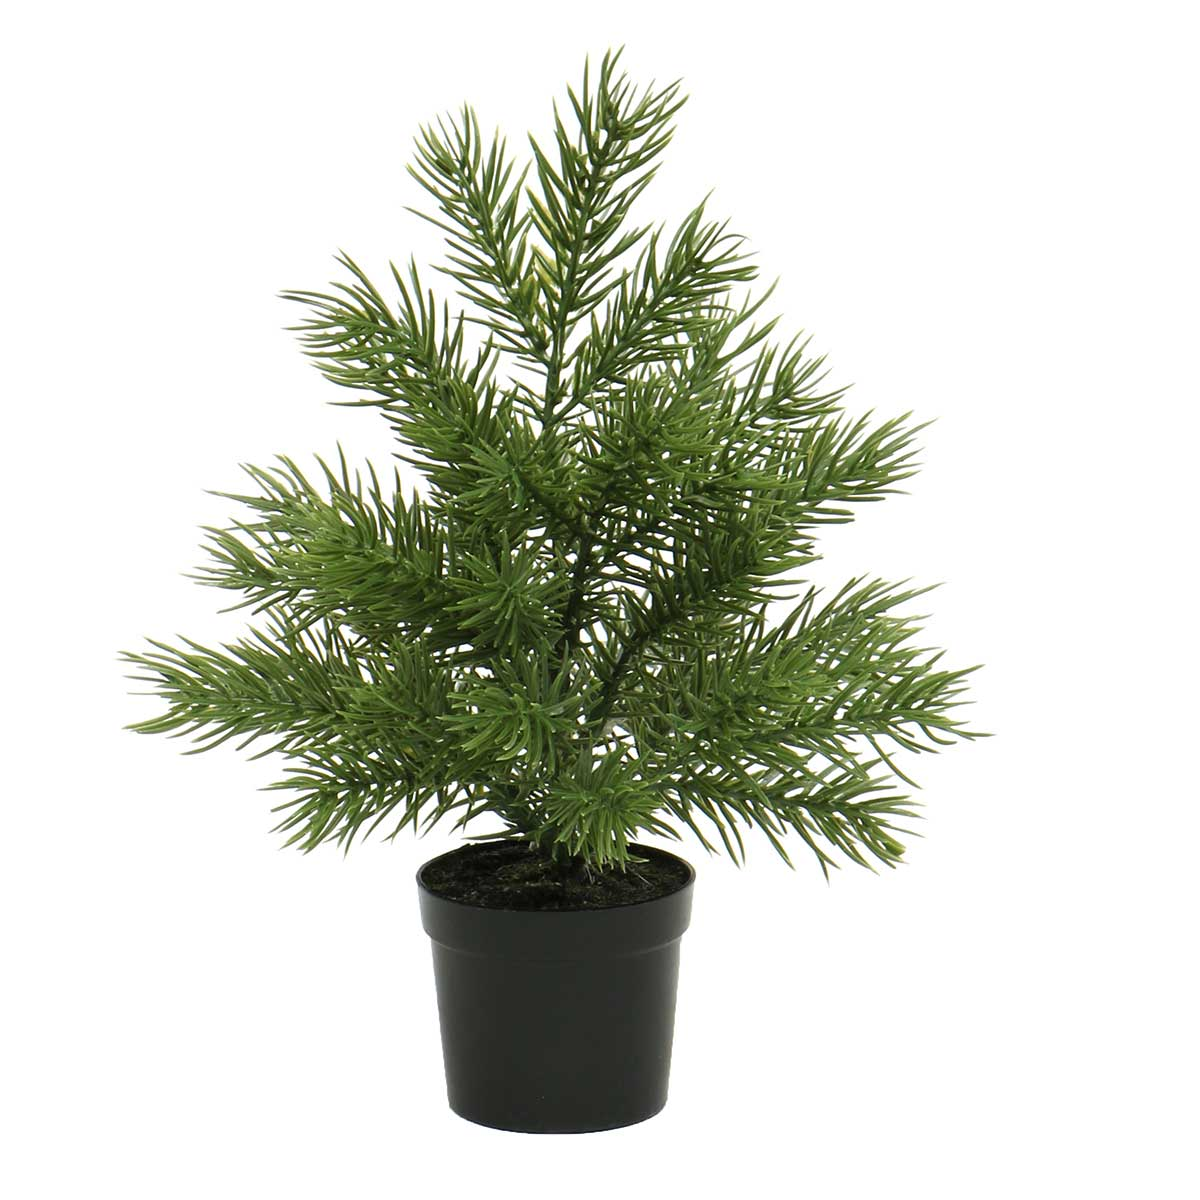 MINI BALSAM FIR TREE IN BLACK POT